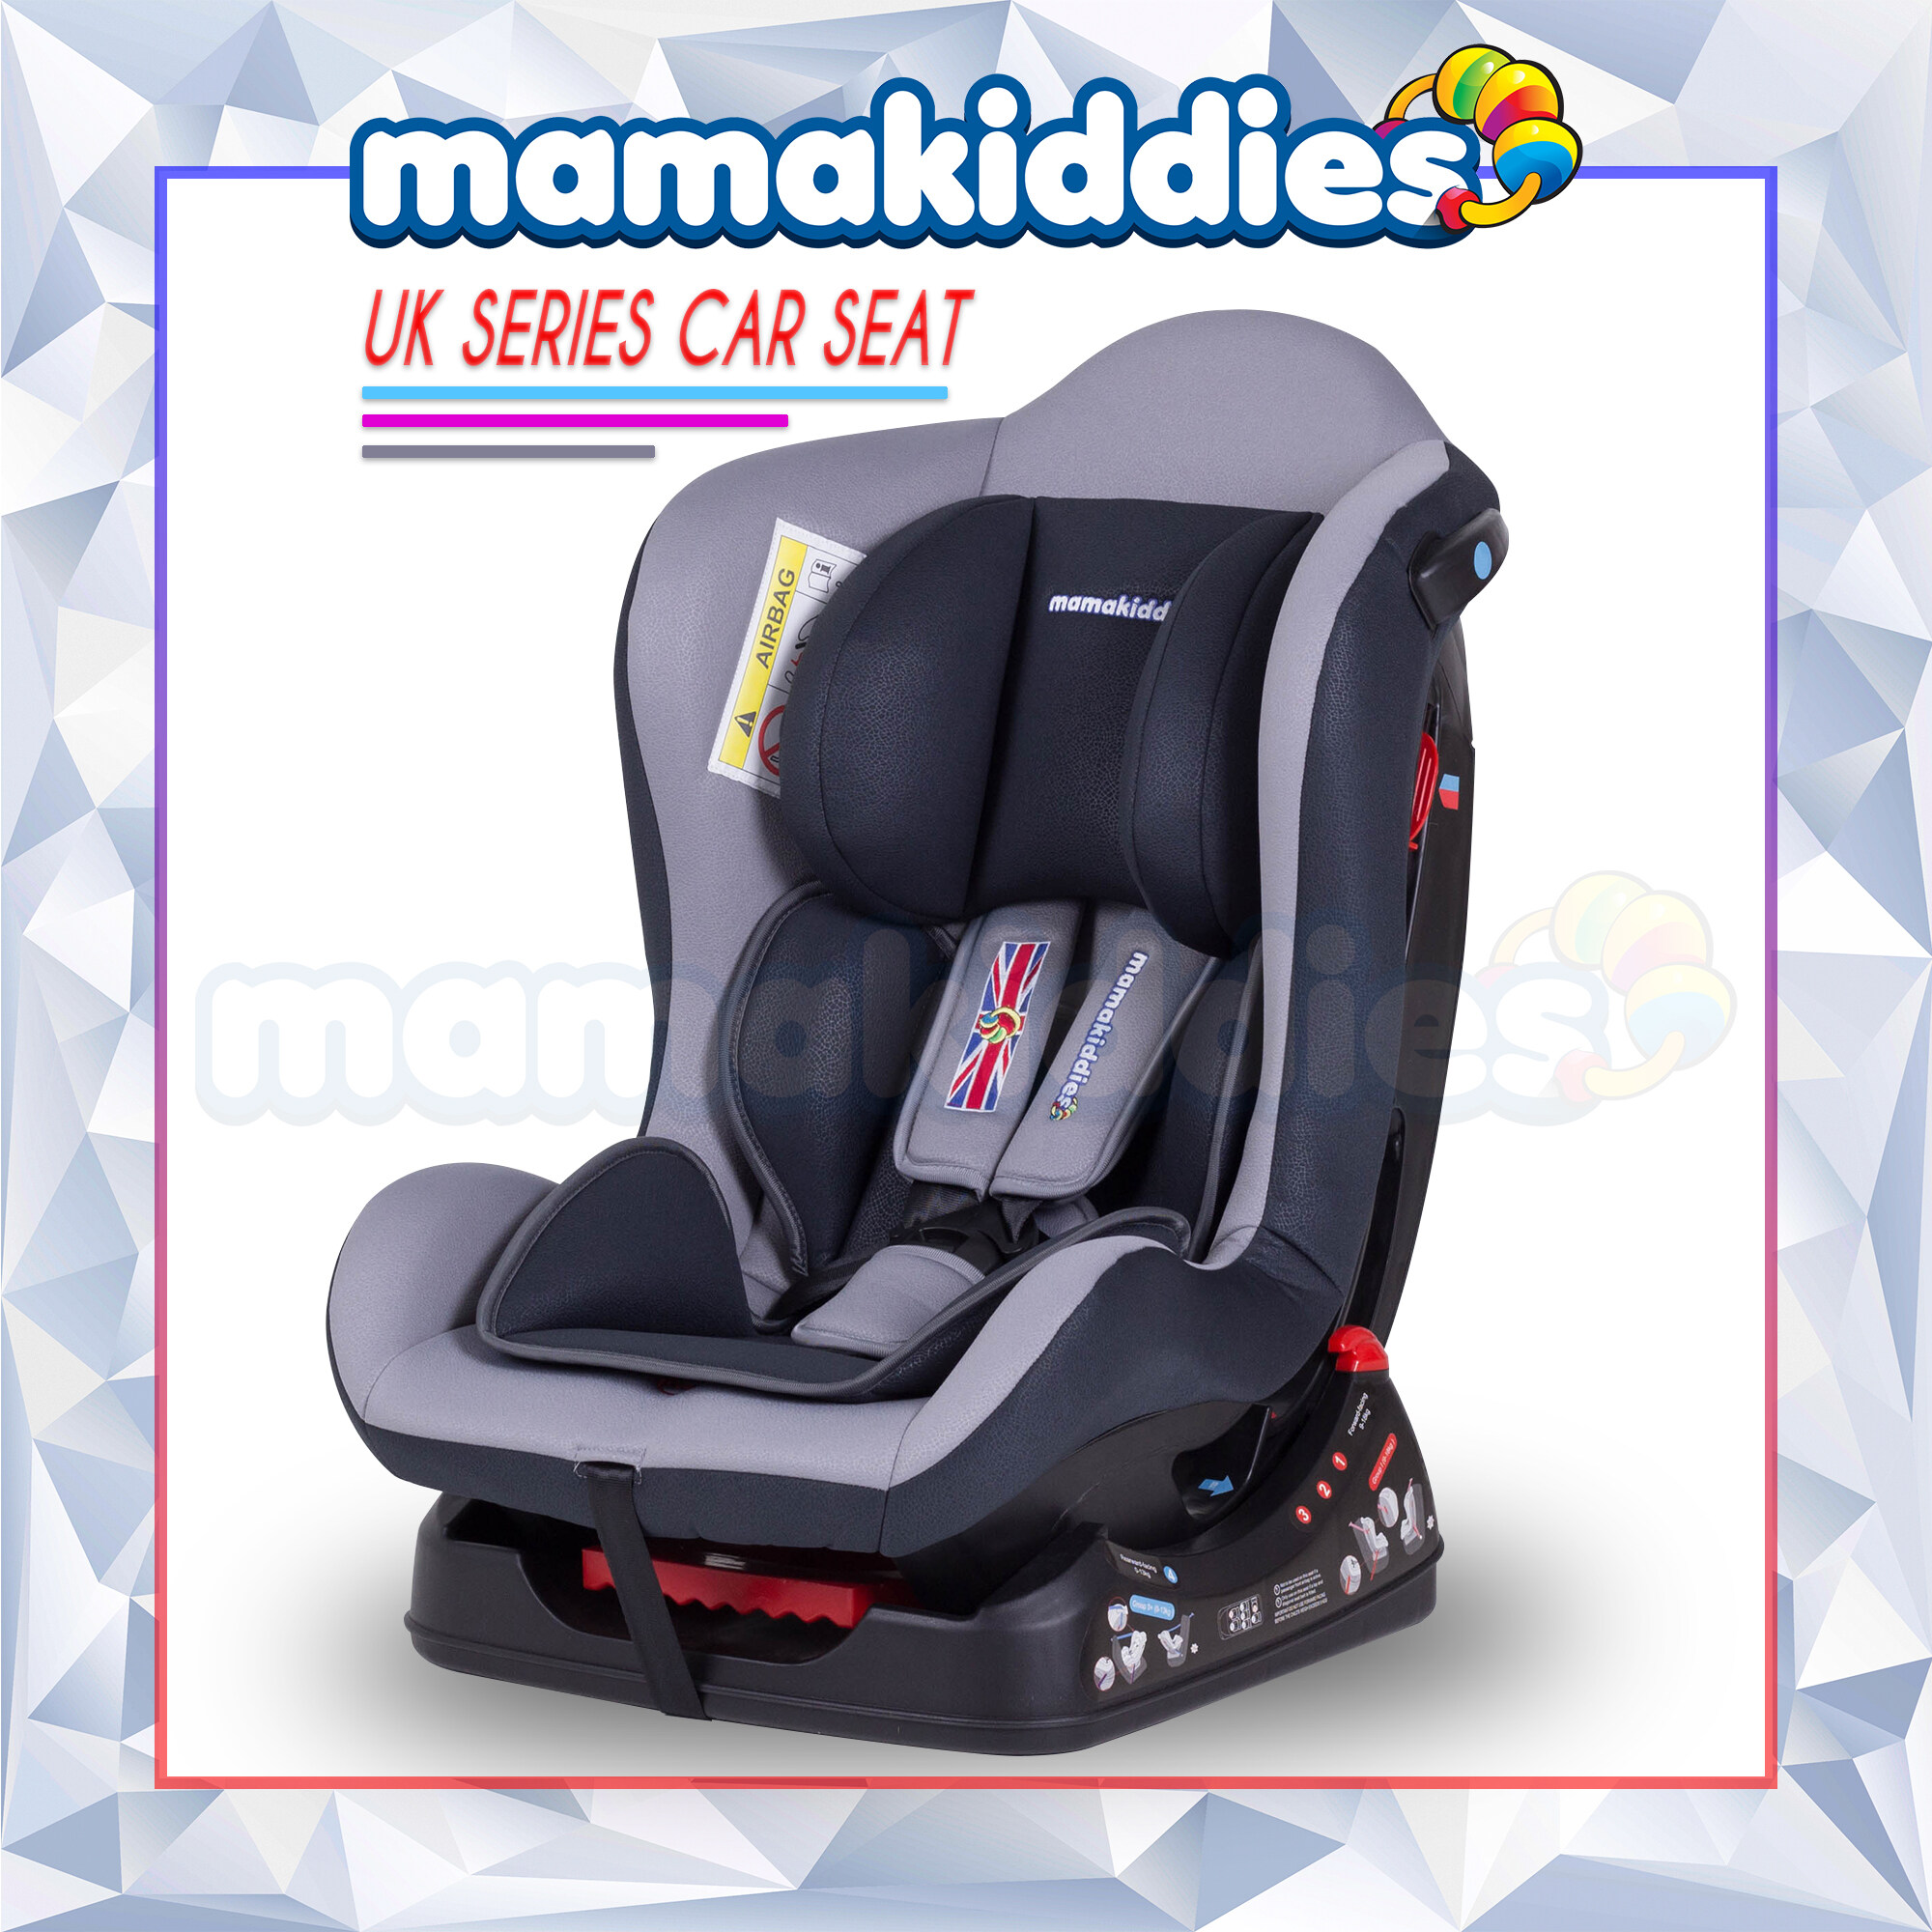 Baby Car Seat Uk Ece Certified Mamakiddies Uks Infant Baby Car Seat Convertible Carseat For New Born To 5 Years Azure